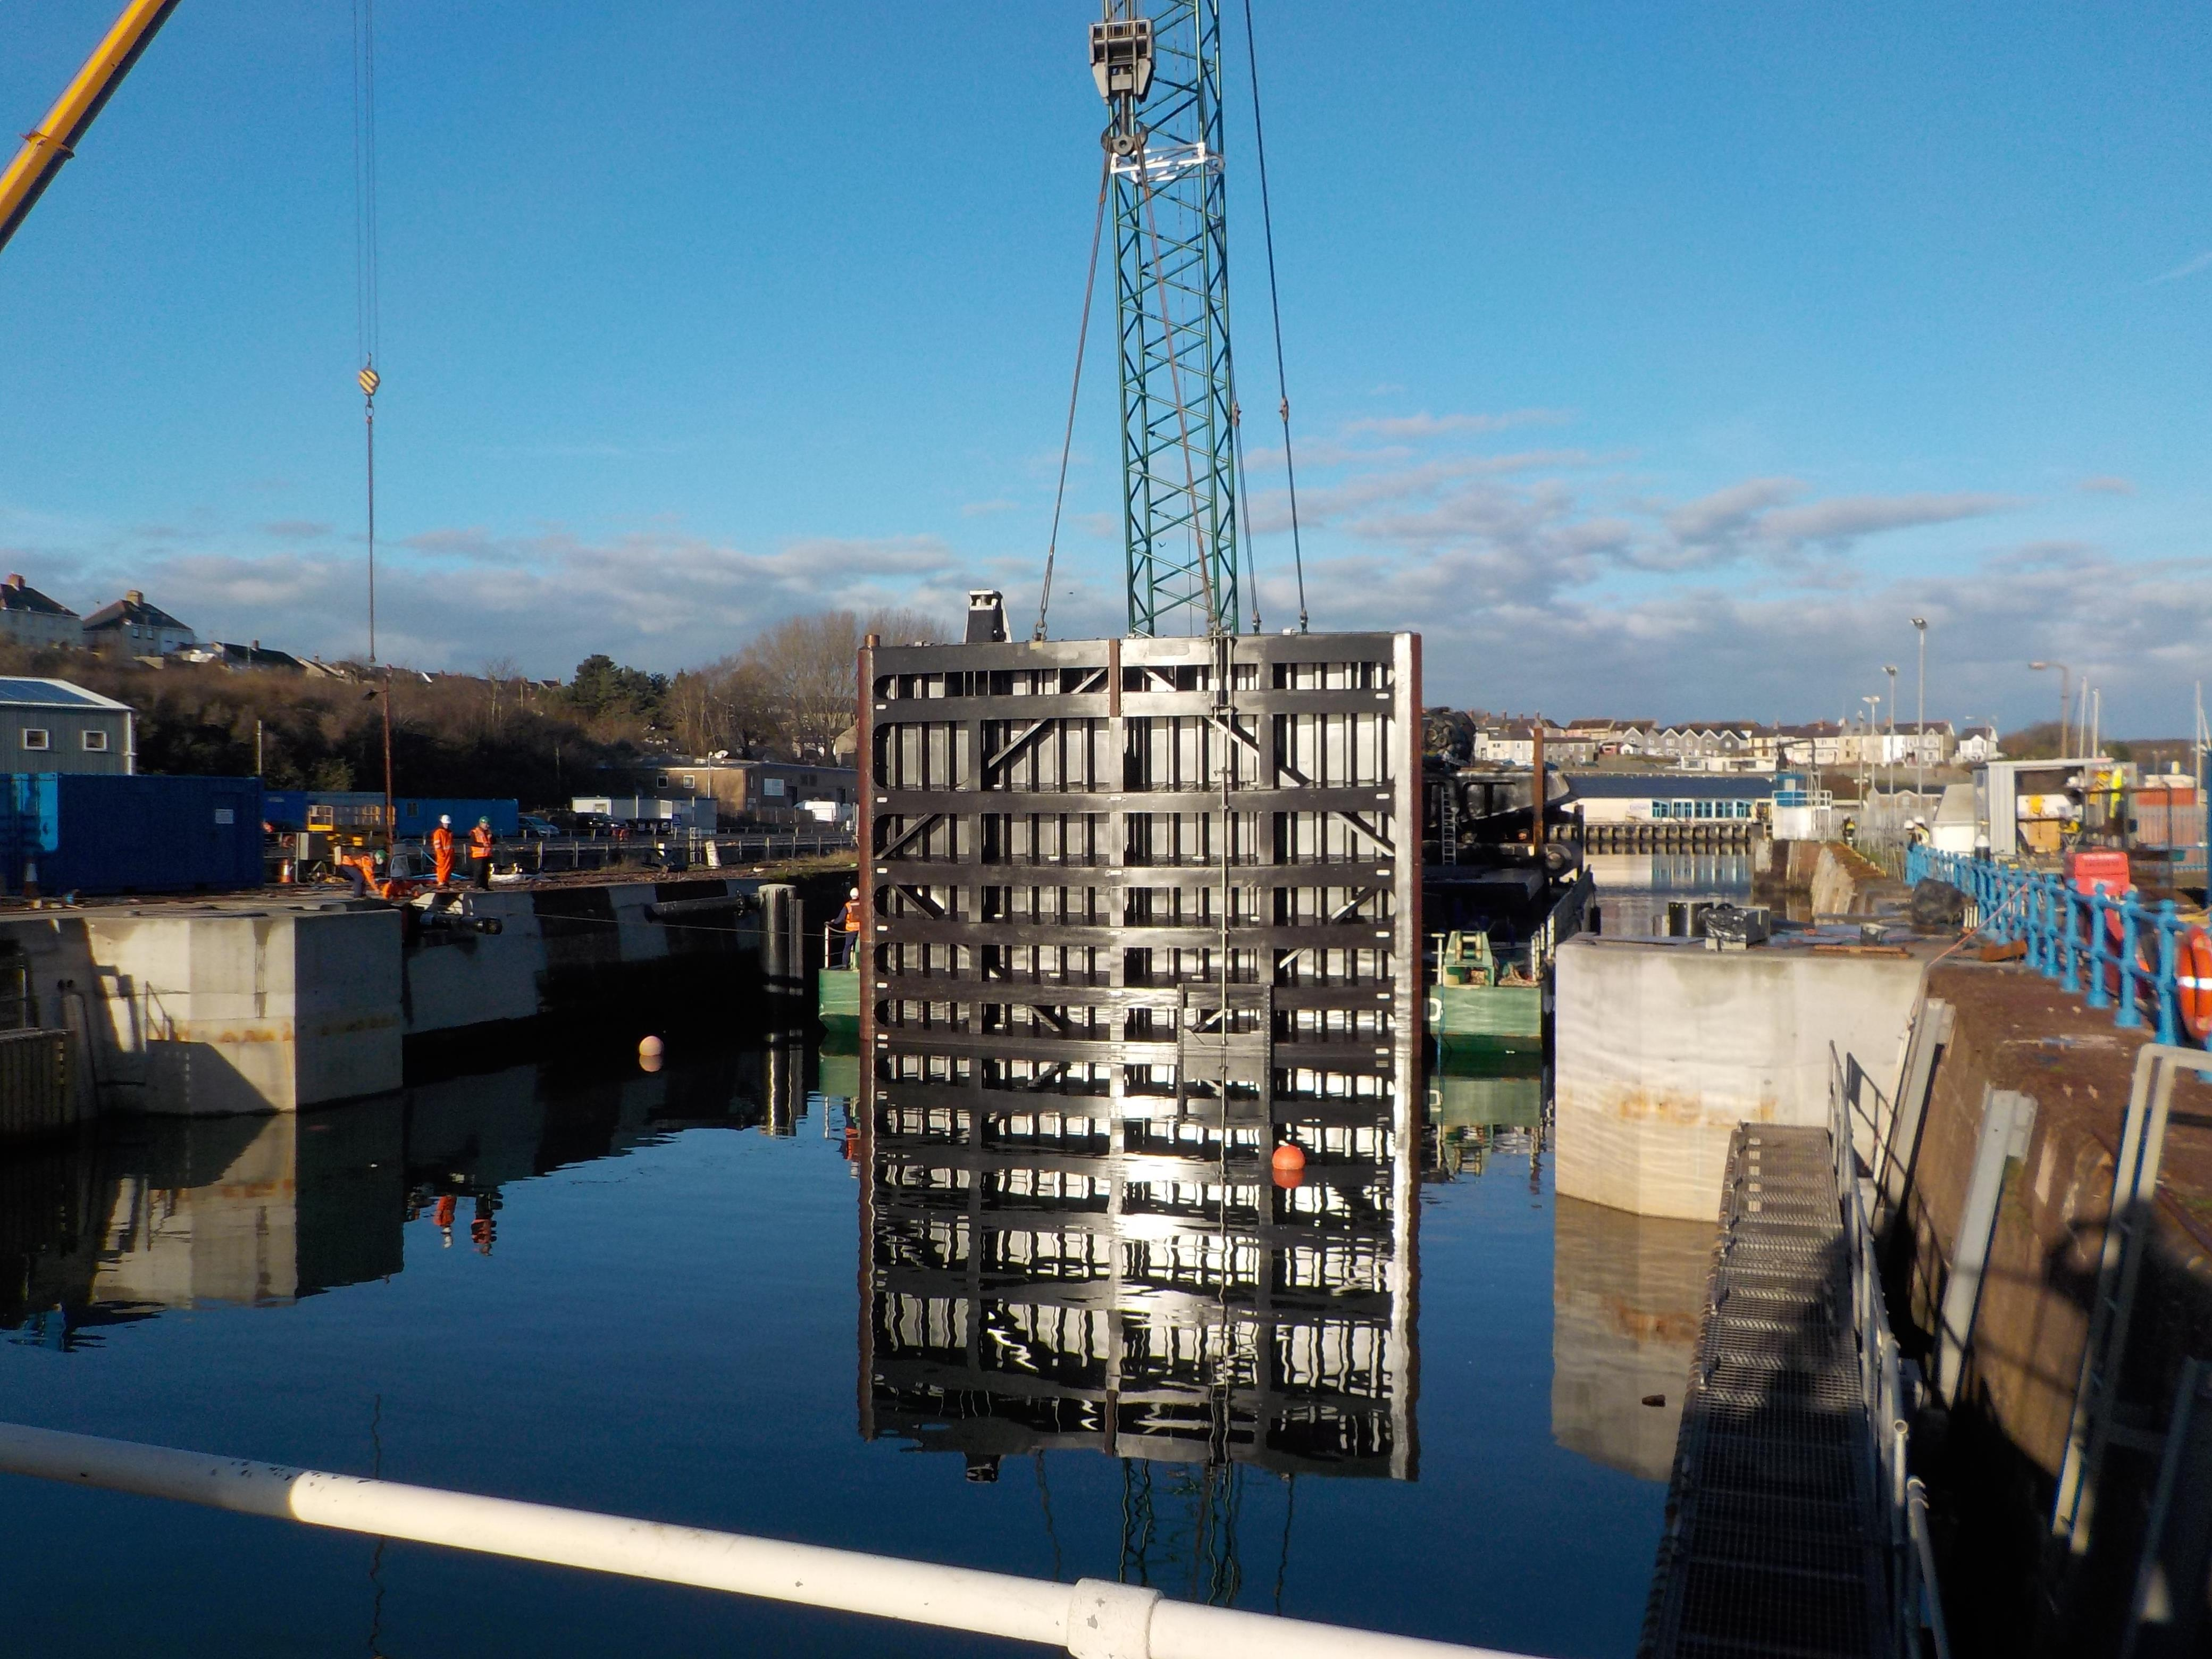 New mitre lock gates for Milford Haven